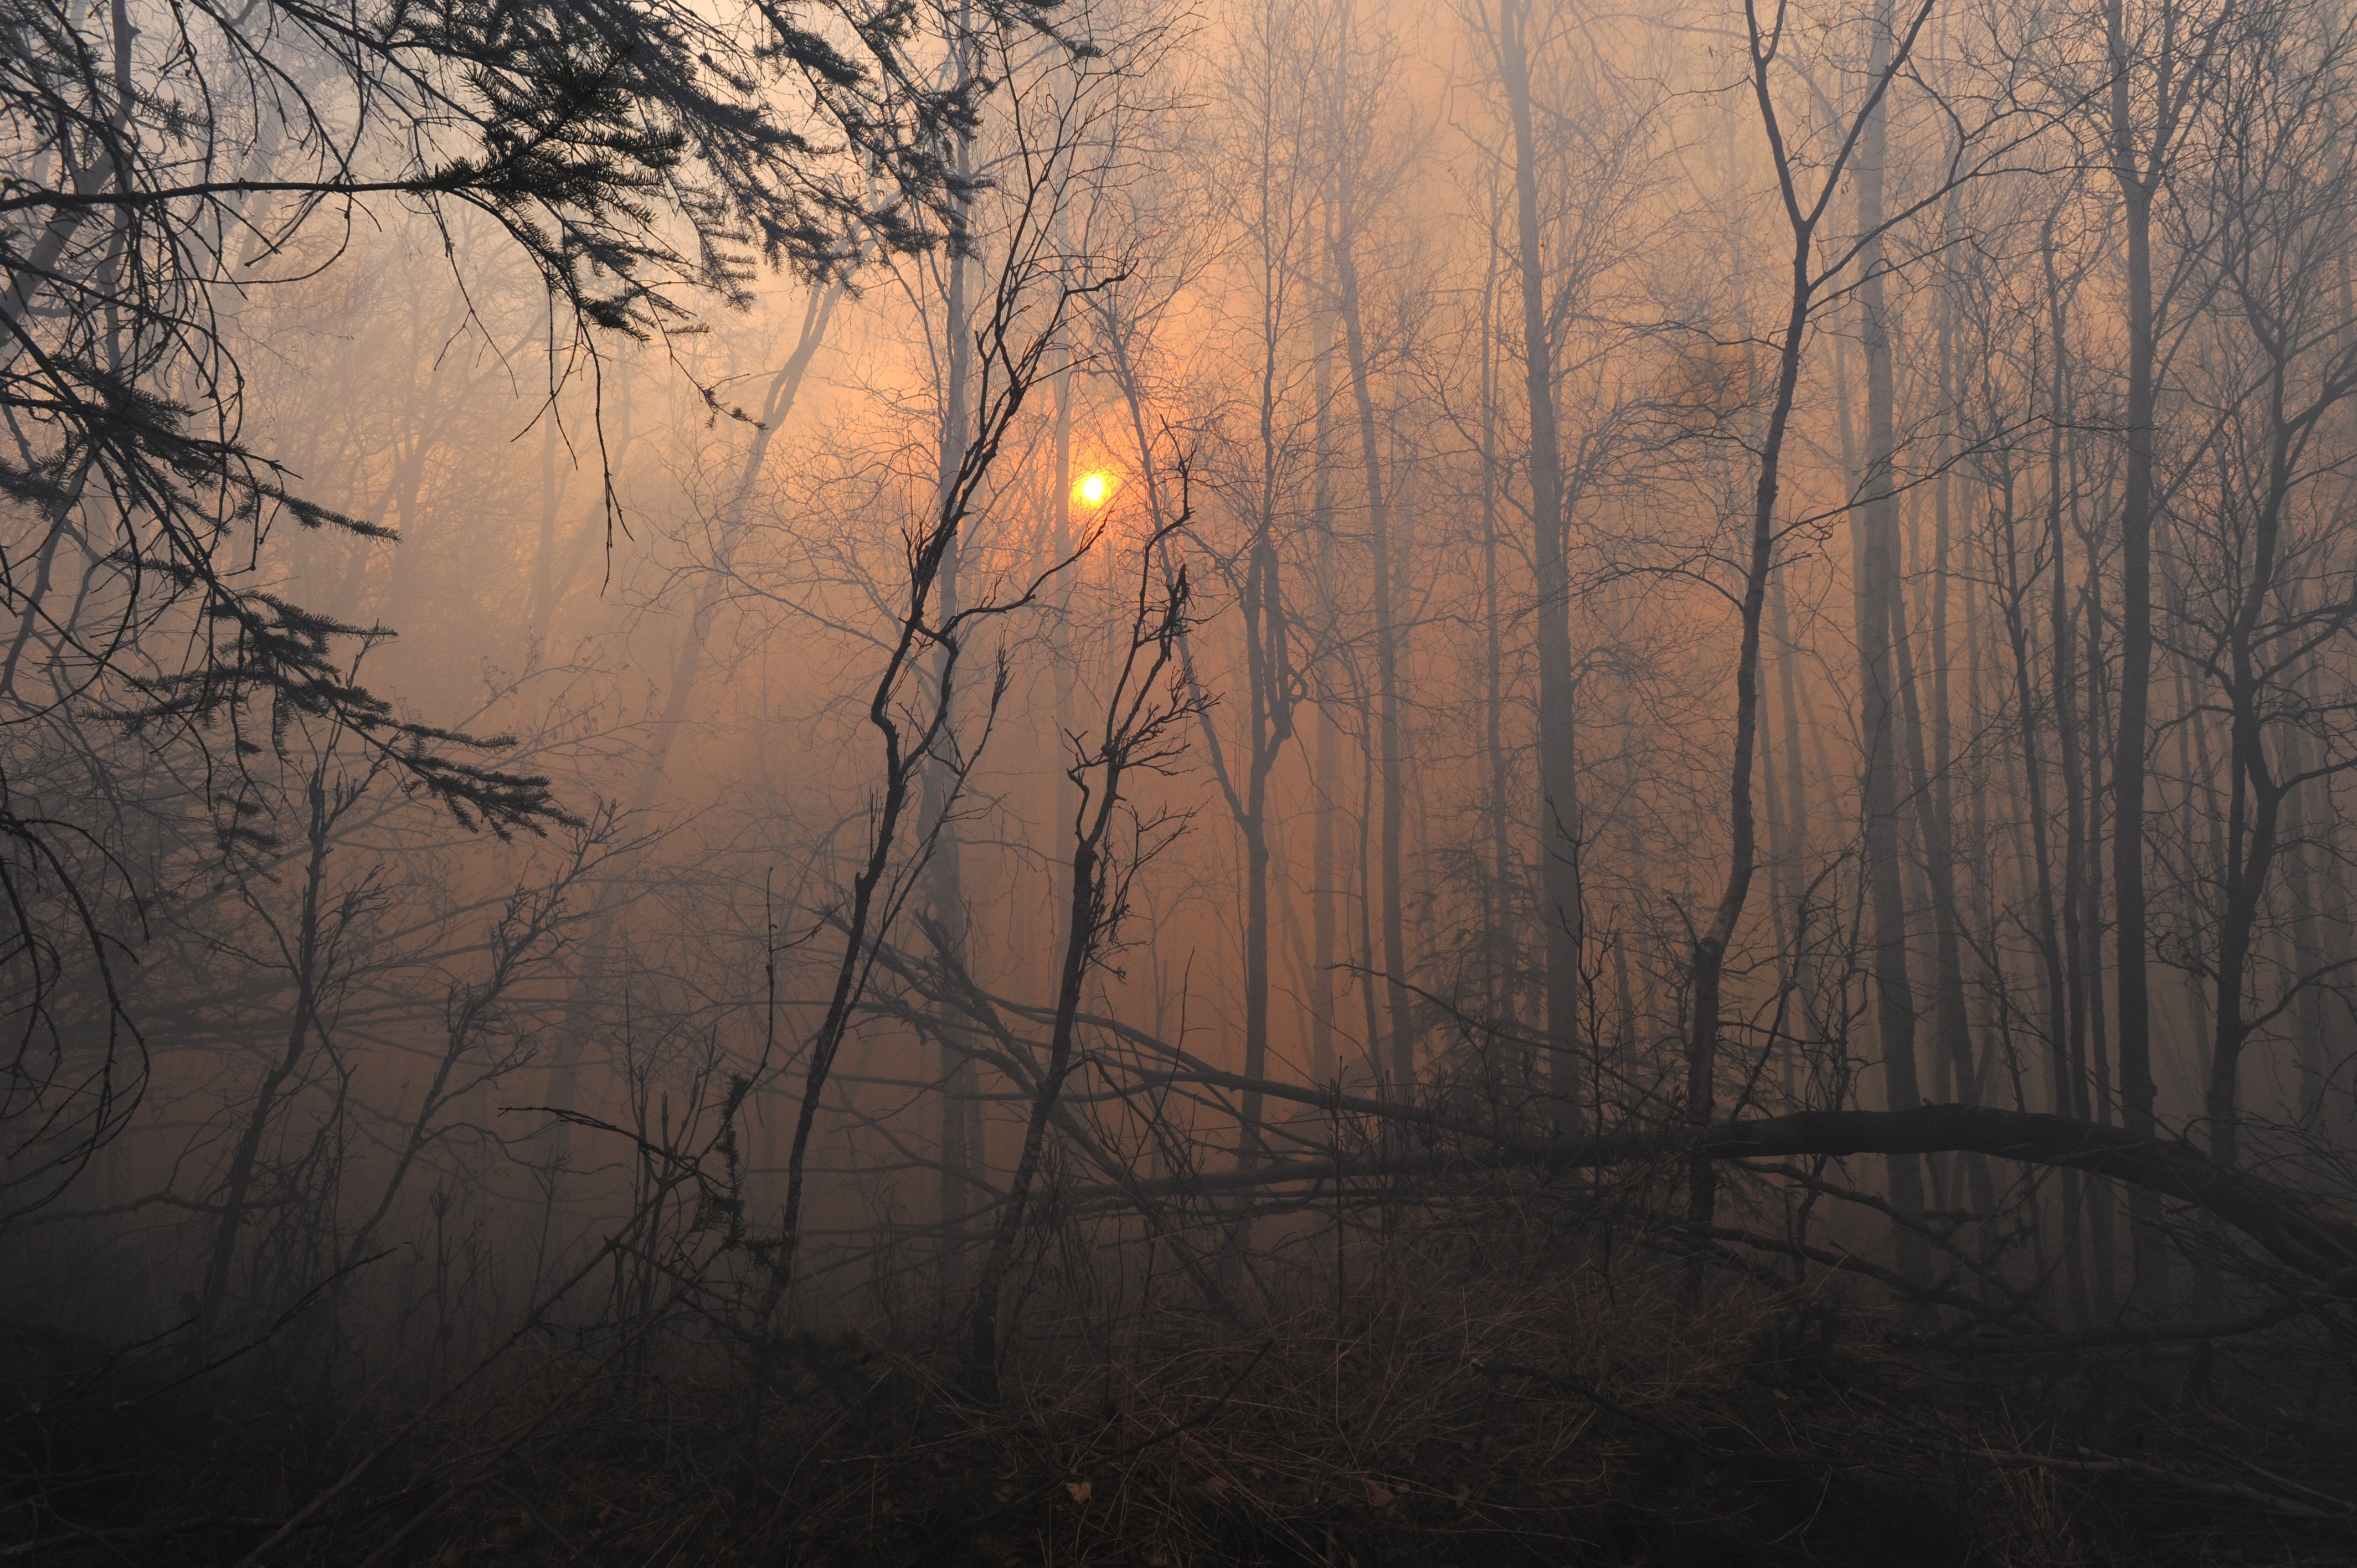 Firefighters from multiple agencies continued to battle the Moose Creek wildfire near Sutton in strong winds and cold temperatures on Sunday, Oct. 16, 2016. (Bill Roth / Alaska Dispatch News)